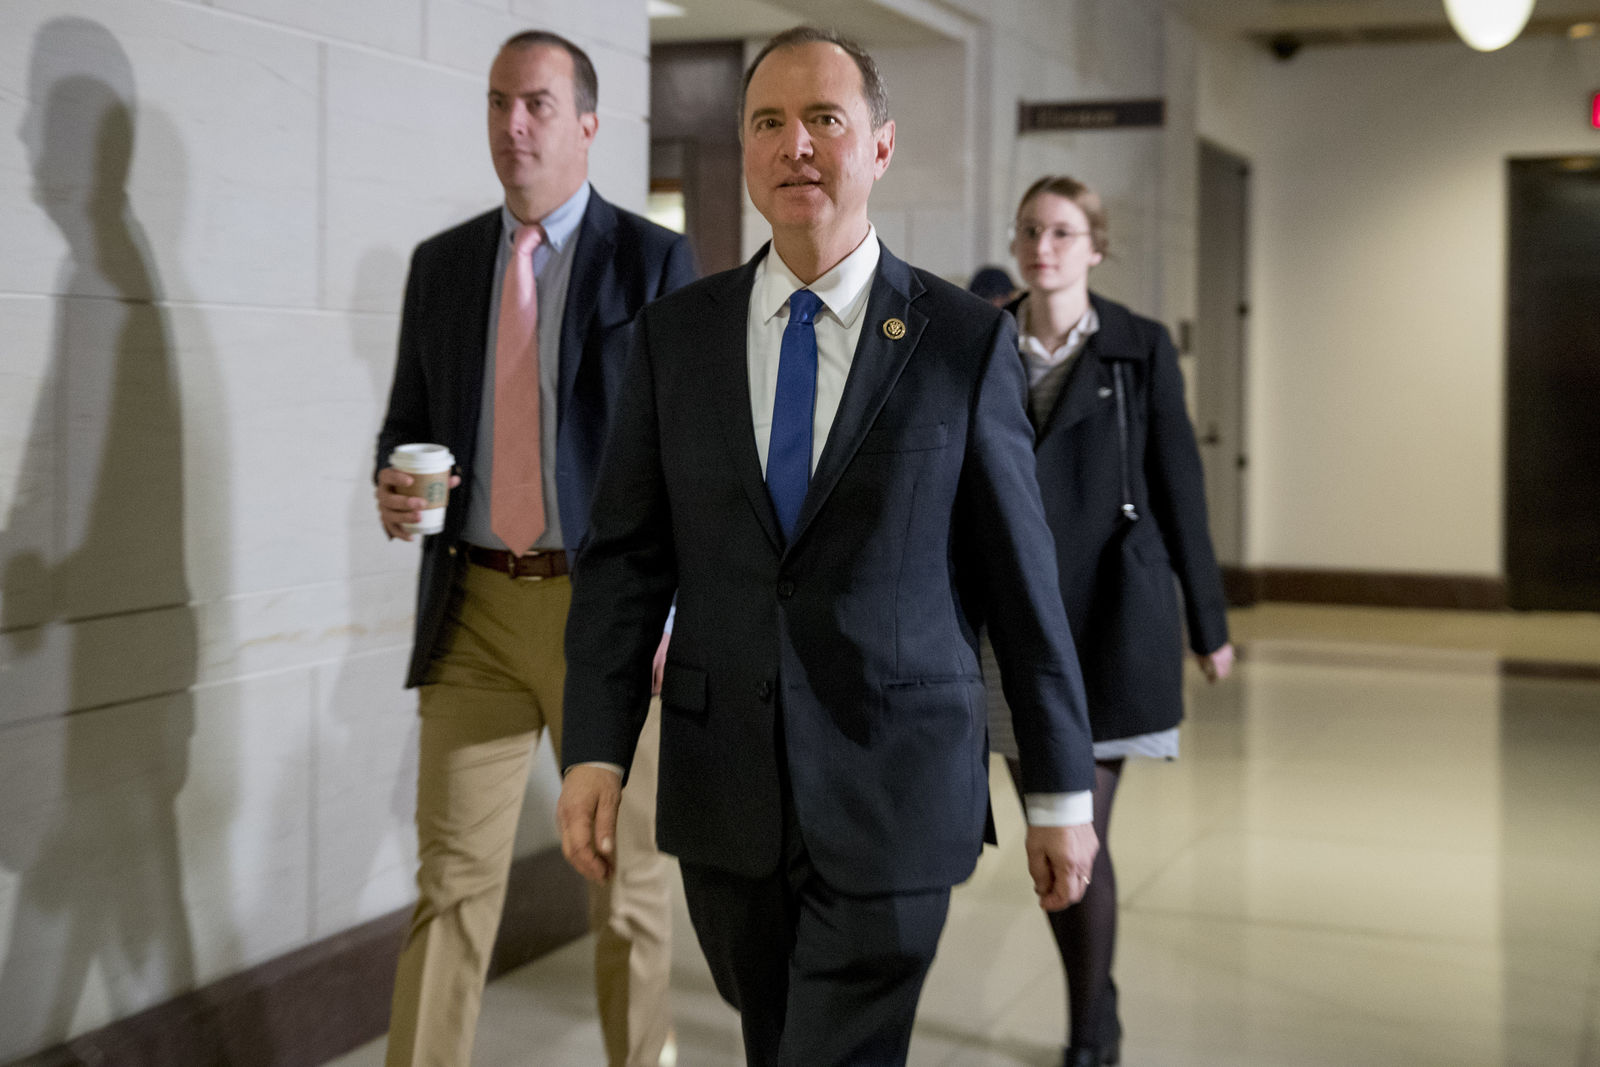 House Intelligence Committee Chairman Rep. Adam Schiff, of Calif., center, arrives for a closed door meeting where Ambassador William Taylor, Jr. will testify as part of the House impeachment inquiry into President Donald Trump, on Capitol Hill in Washington, Tuesday, Oct. 22, 2019. (AP Photo/Andrew Harnik)